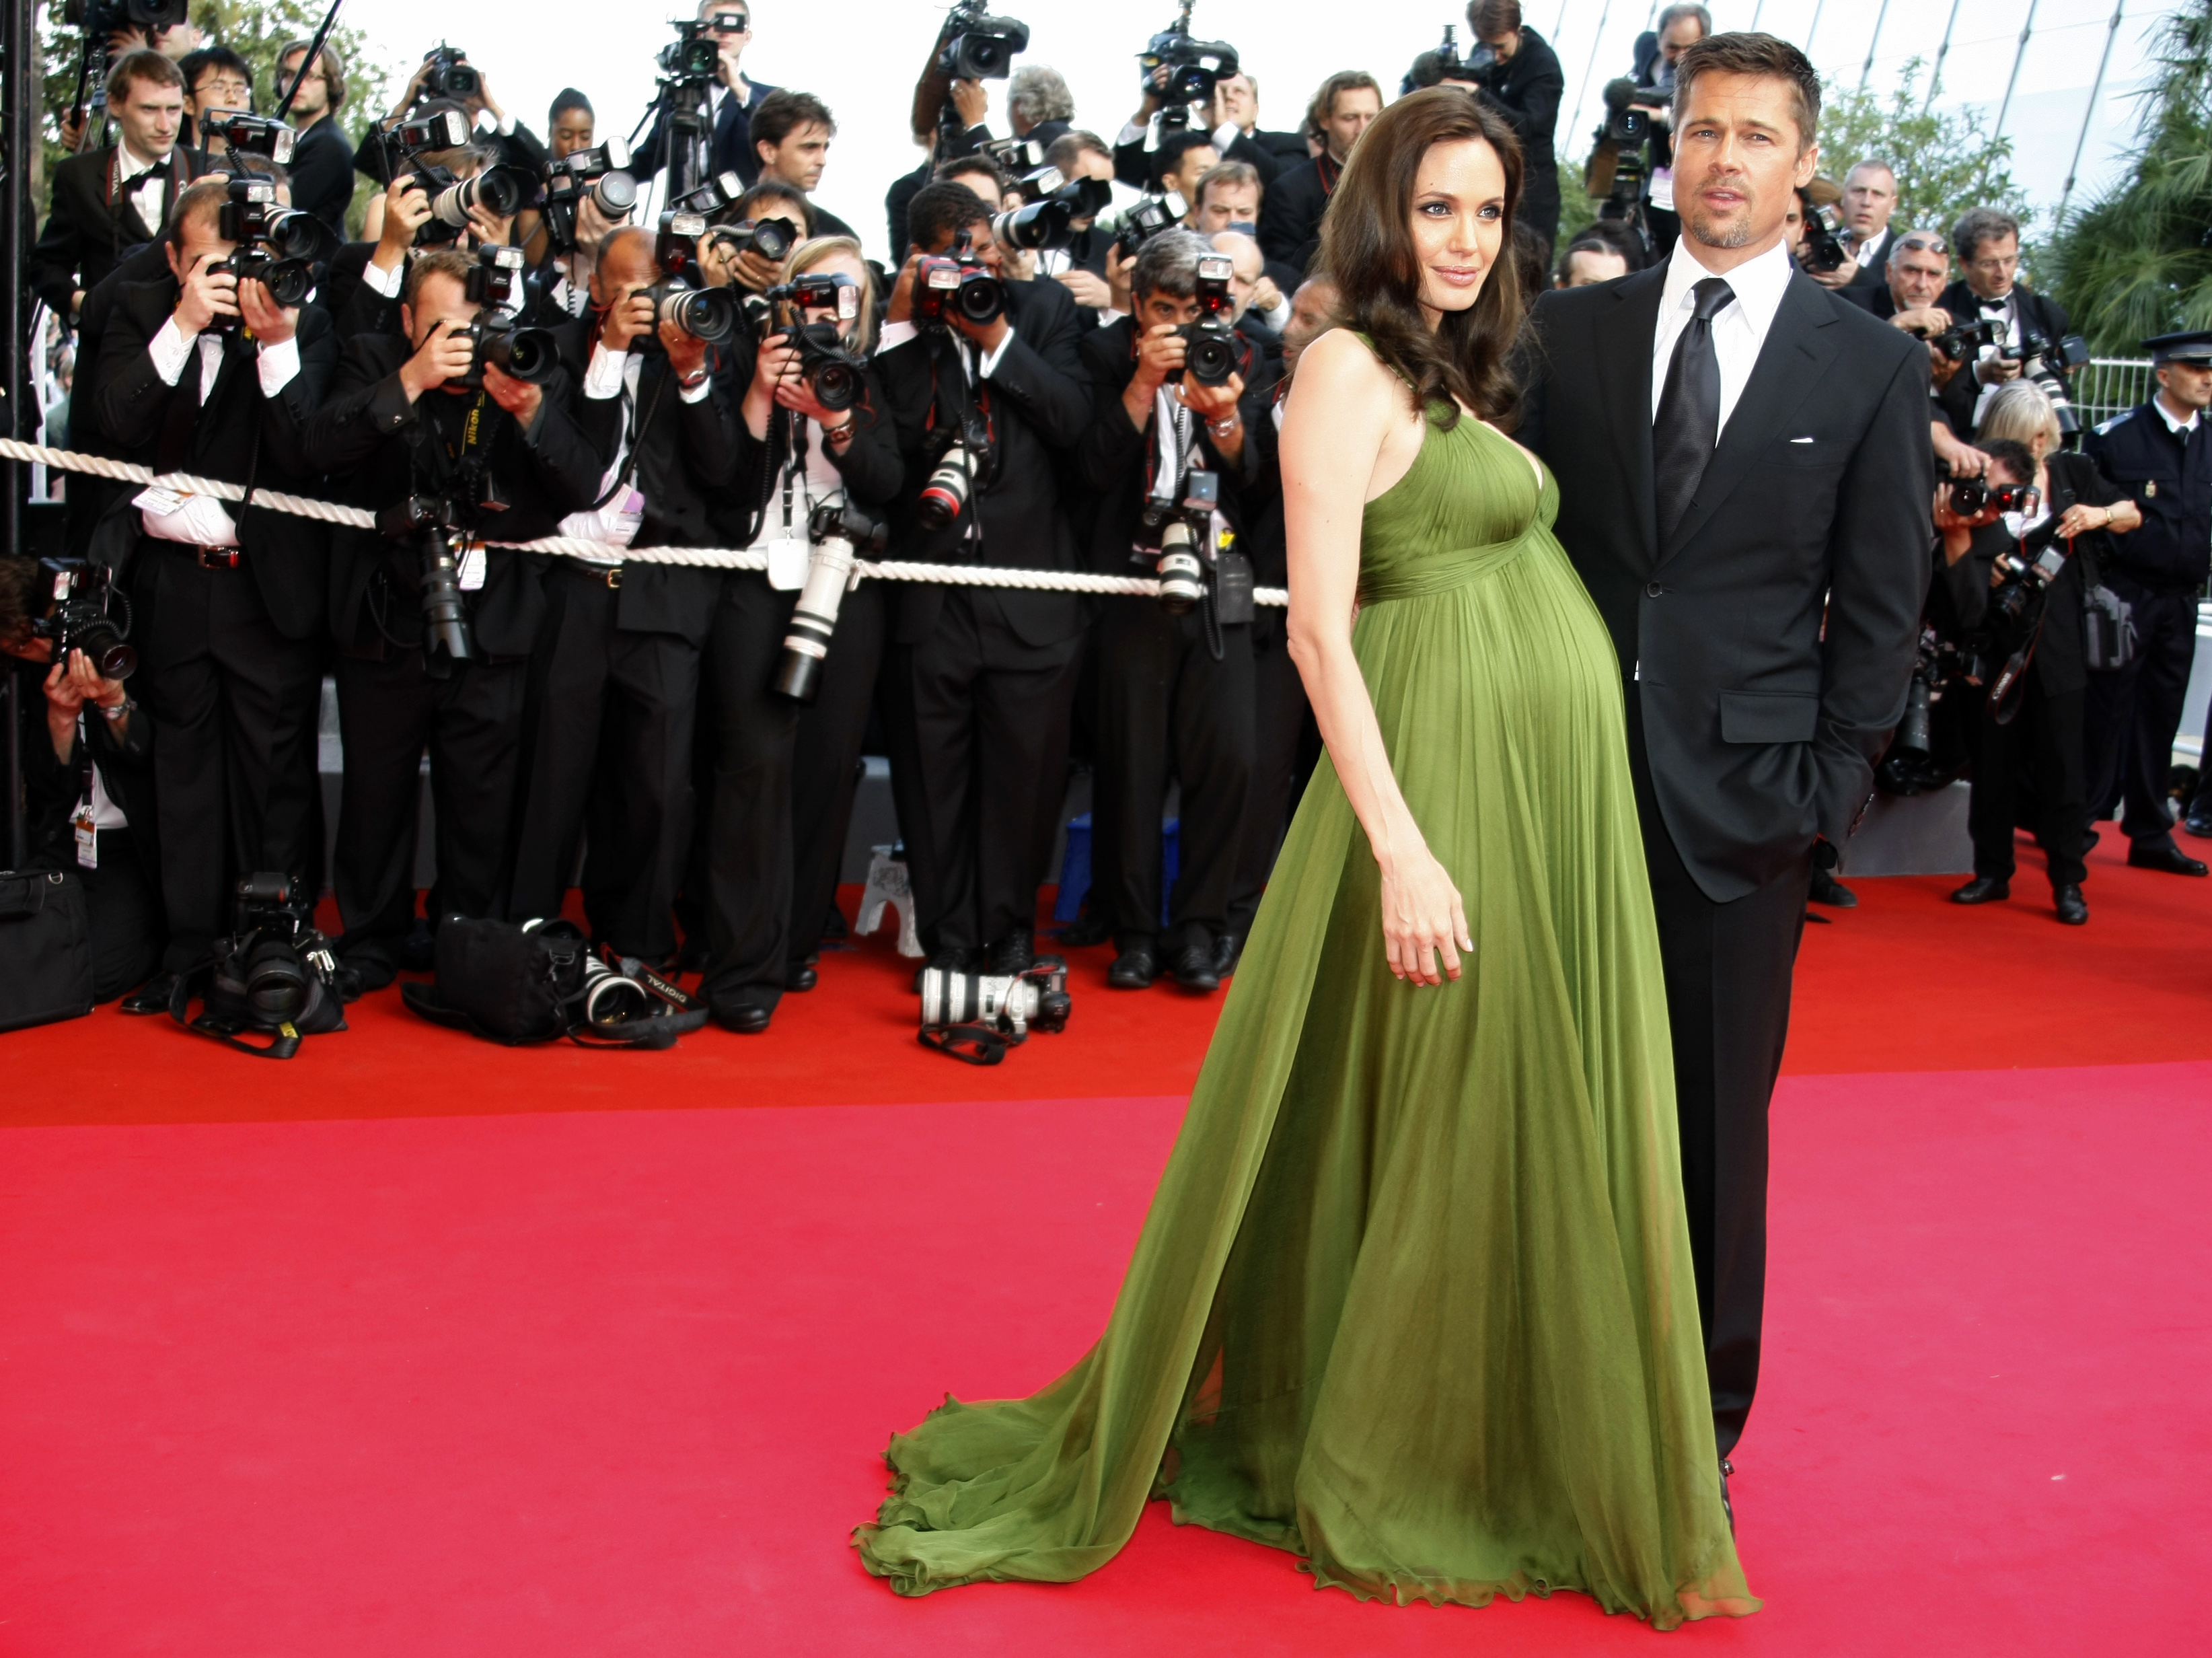 Angelina Jolie Pregnant: IVF Treatment Expecting